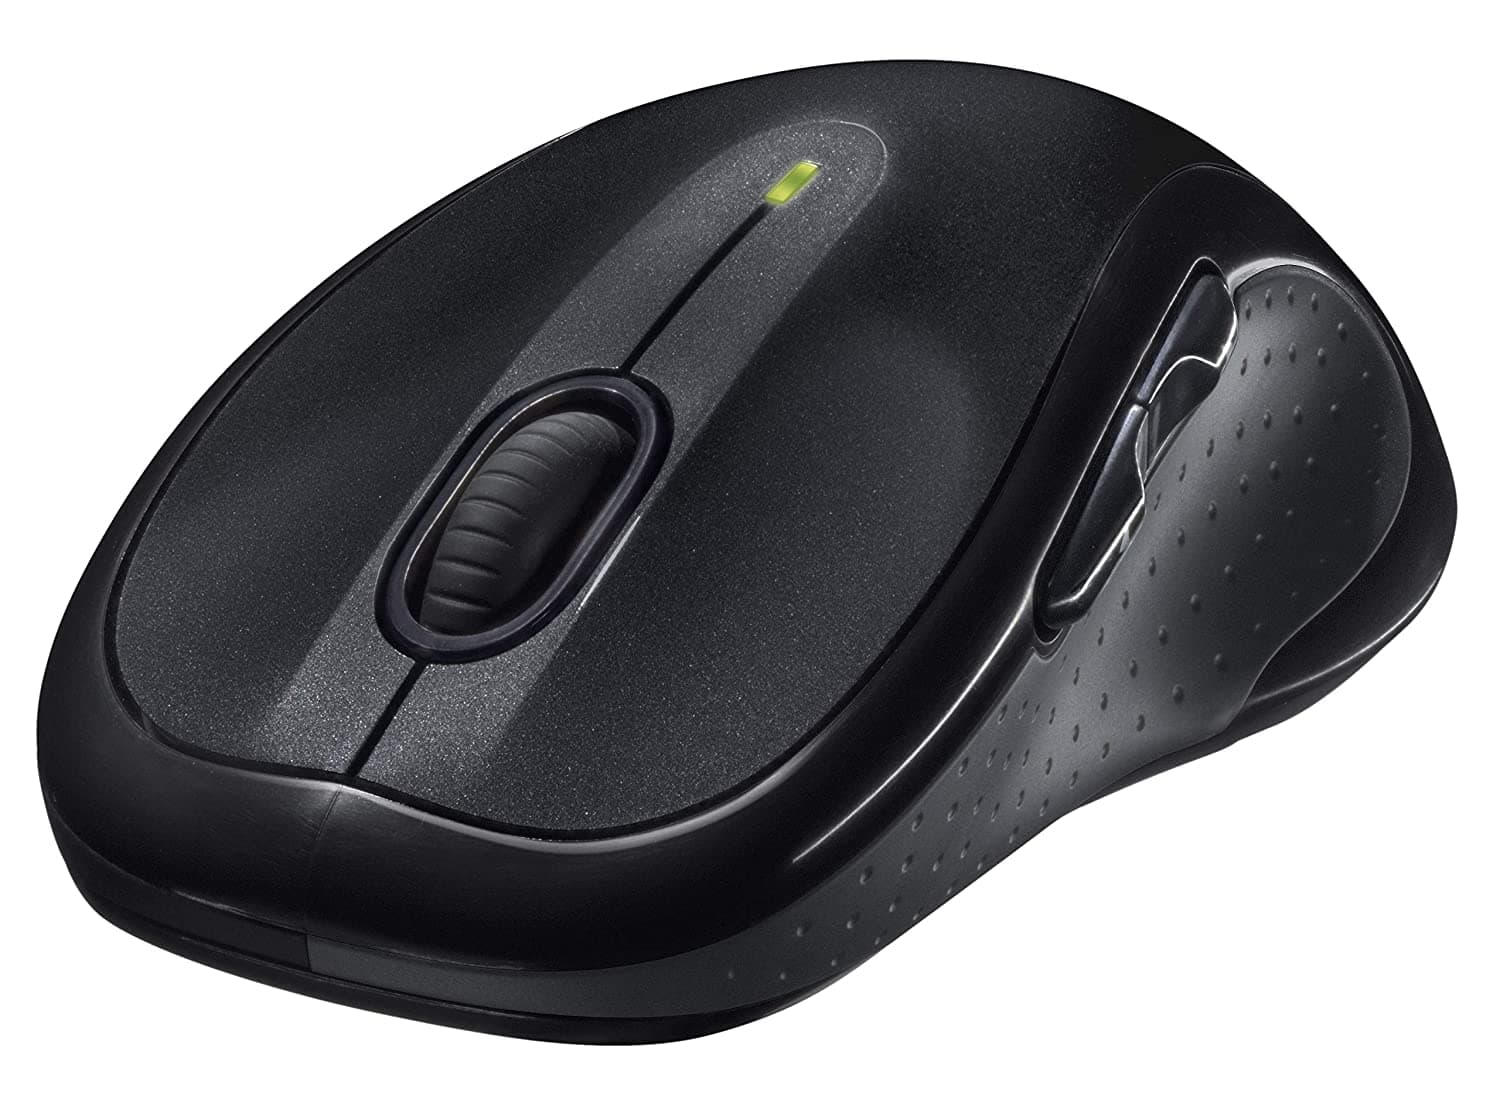 Logitech M510 Wireless Computer Mouse – Comfortable Shape with USB Unifying Receiver, with Back/Forward Buttons and Side-to-Side Scrolling, Dark Gray $21.97